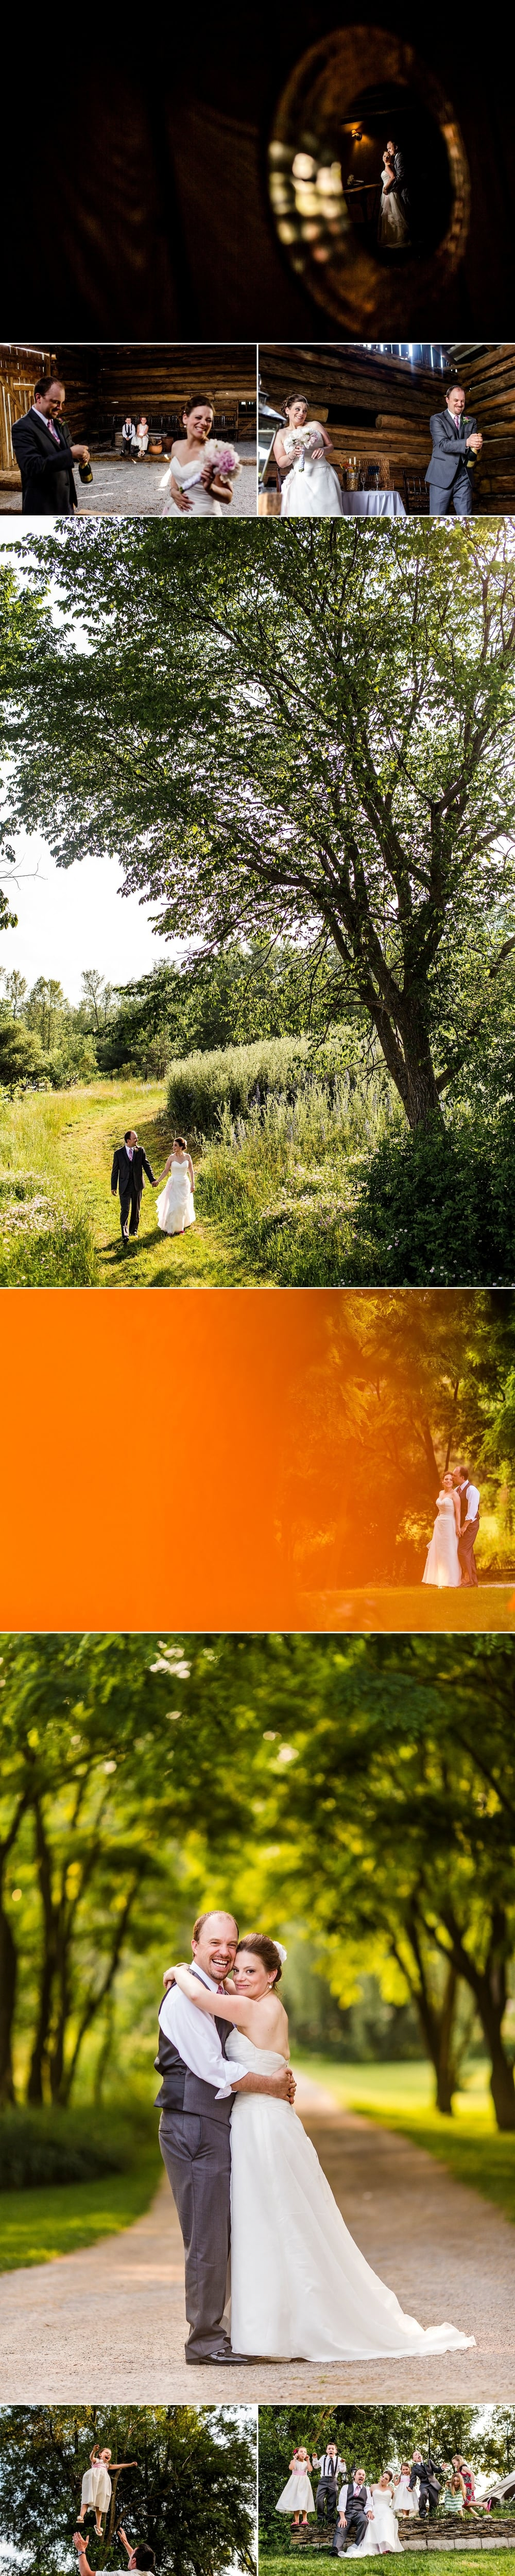 Wedding portraits at Stonefields Heritage Farm